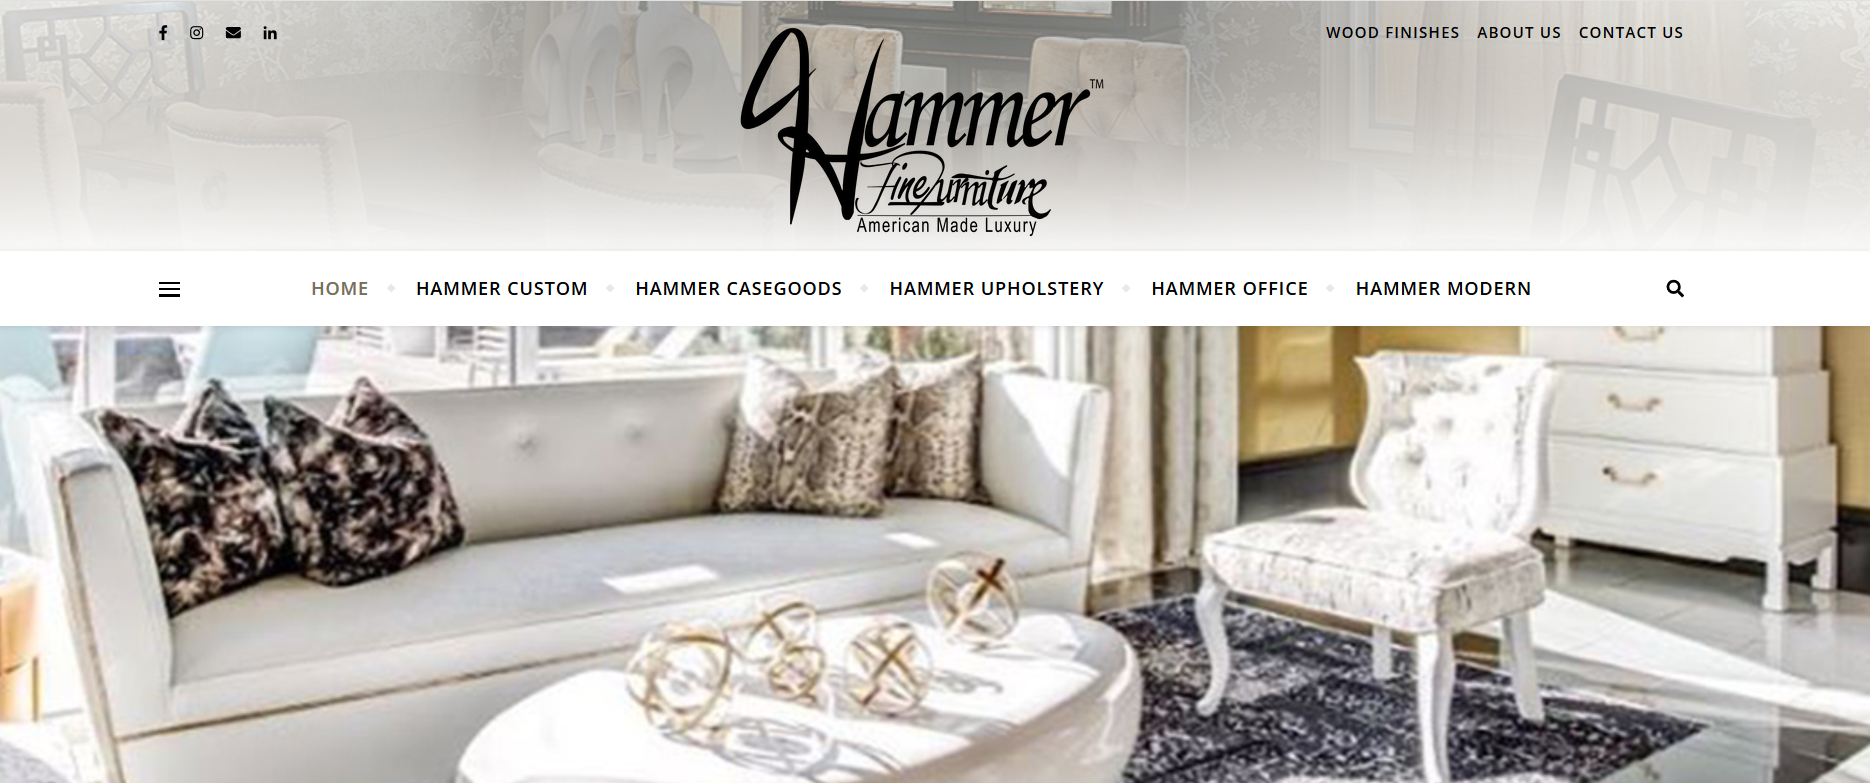 hammerfinefurniture's website